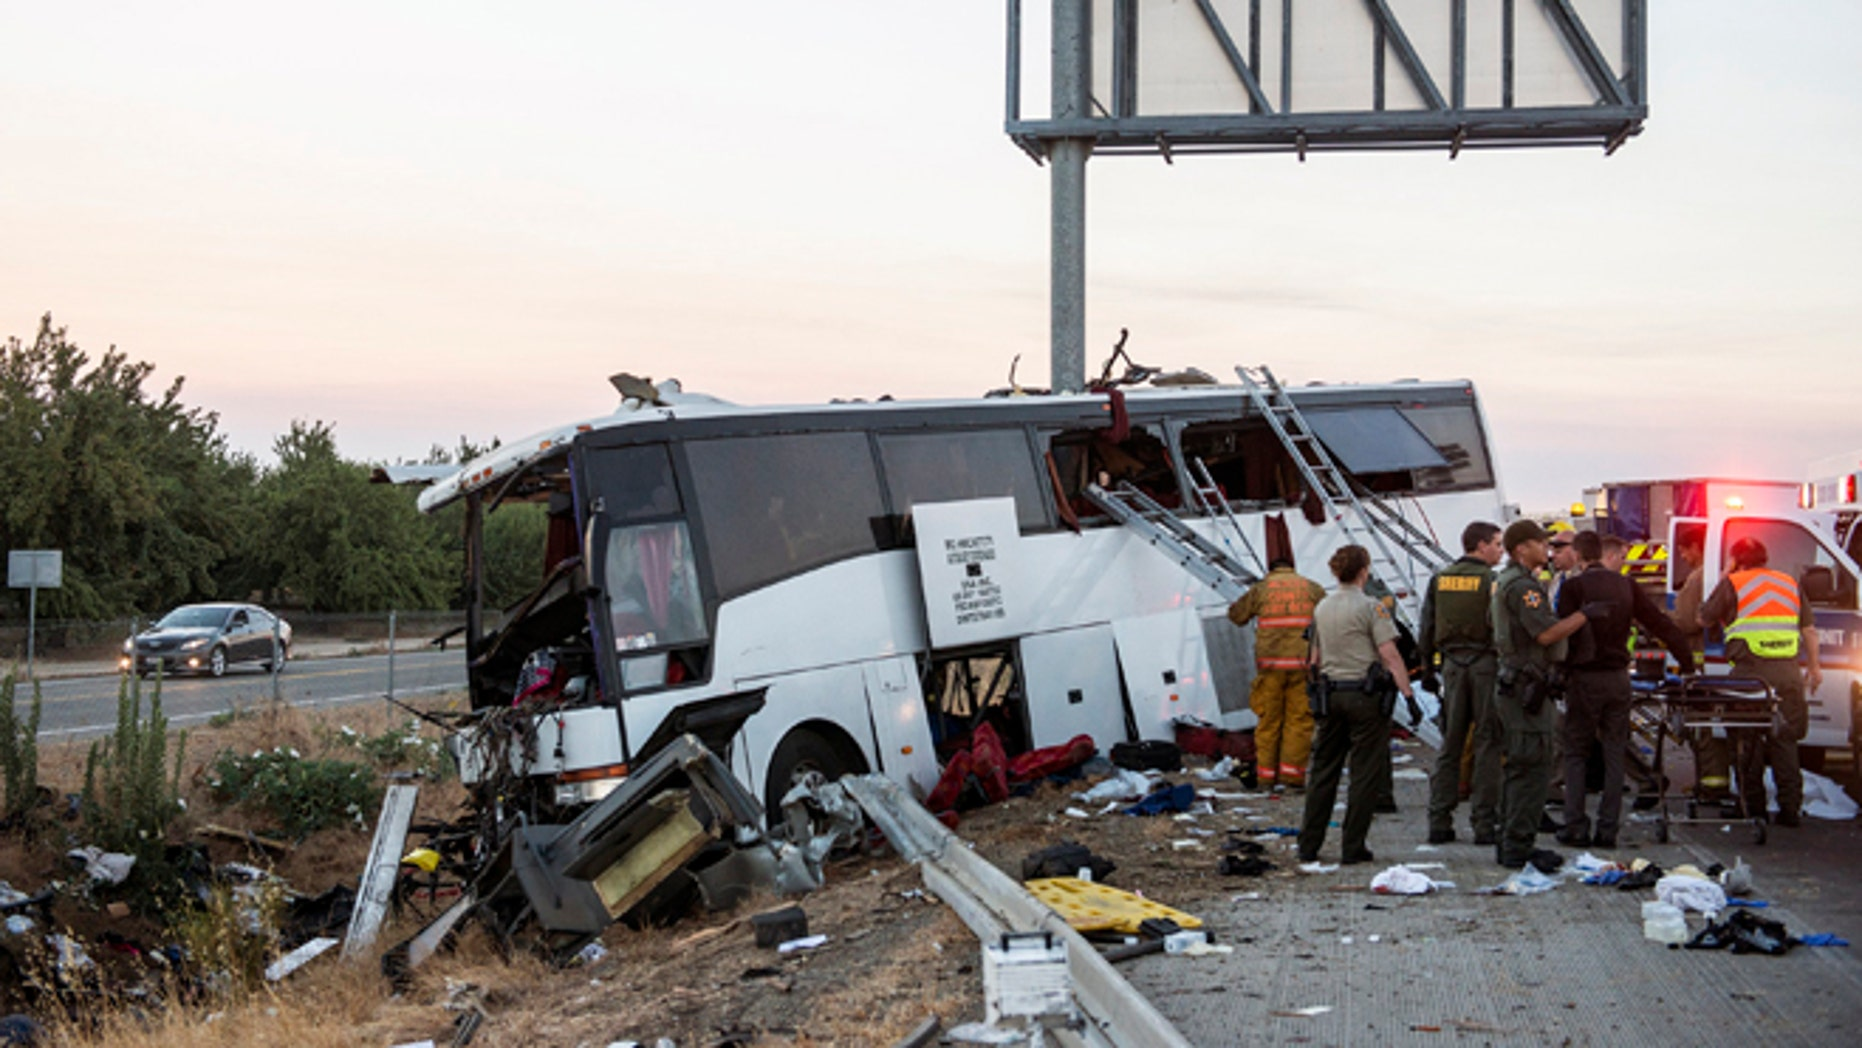 Rescue crews work at the scene of a charter bus crash in Calif., Tuesday, Aug. 2, 2016.